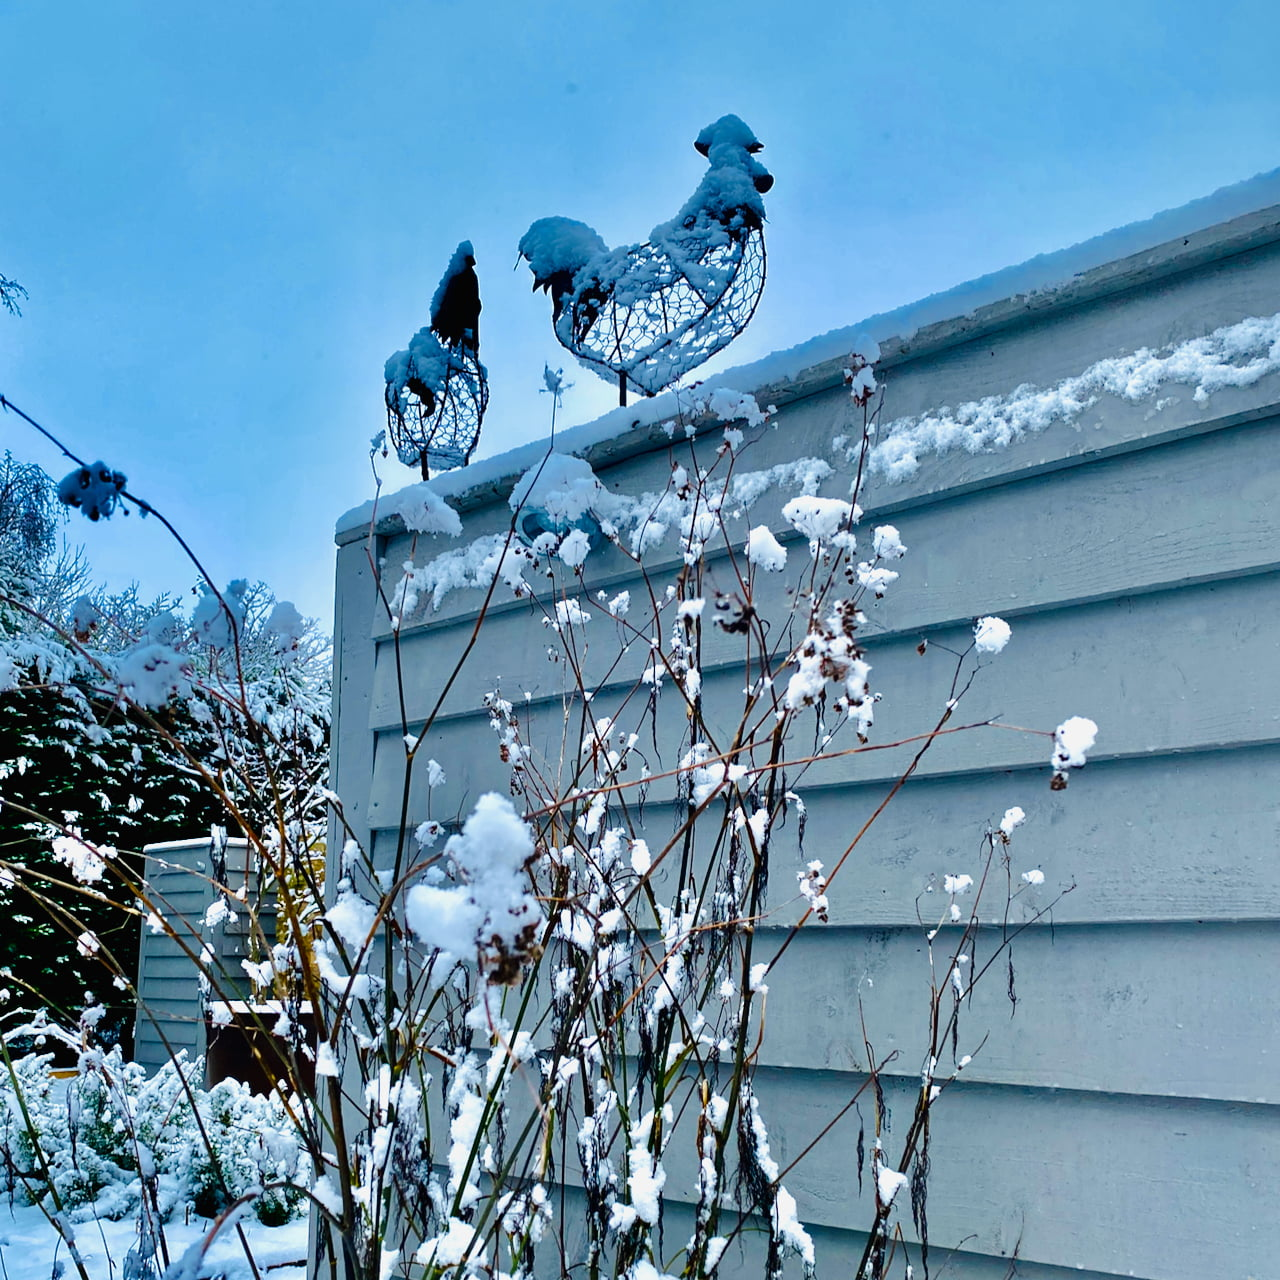 snowy cockerel & pal sitting on the fence in our garden designed by Jo Alderson Phillips